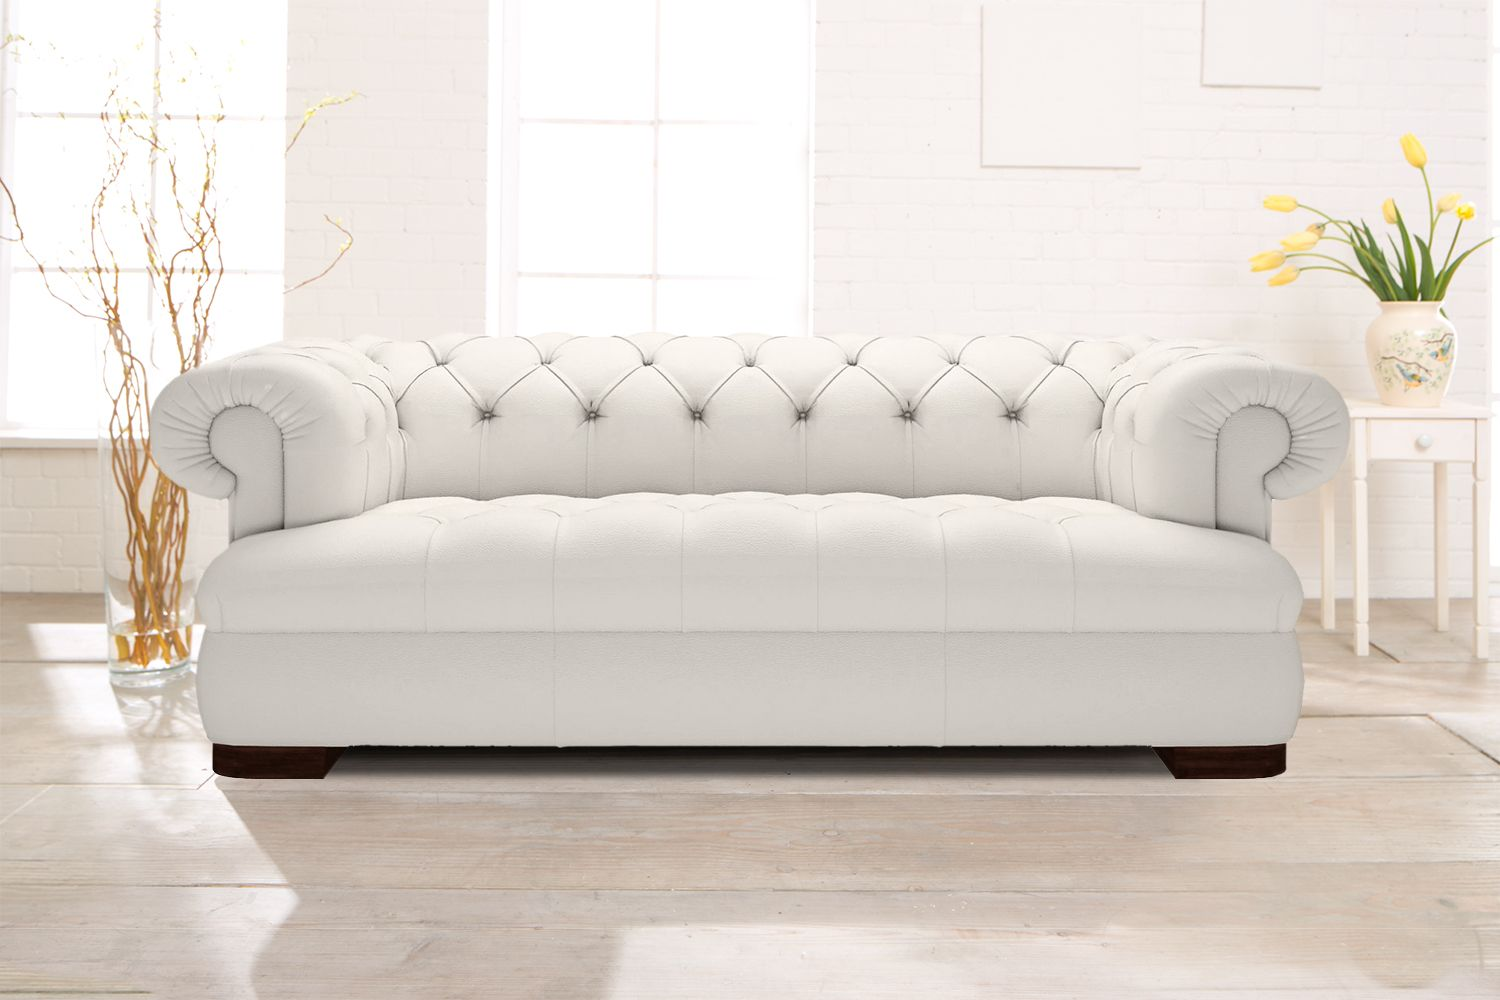 Chesterfield Ecksofa Weiss Chesterfield Sofa In Elegantem Weiß Modell Loxley Www